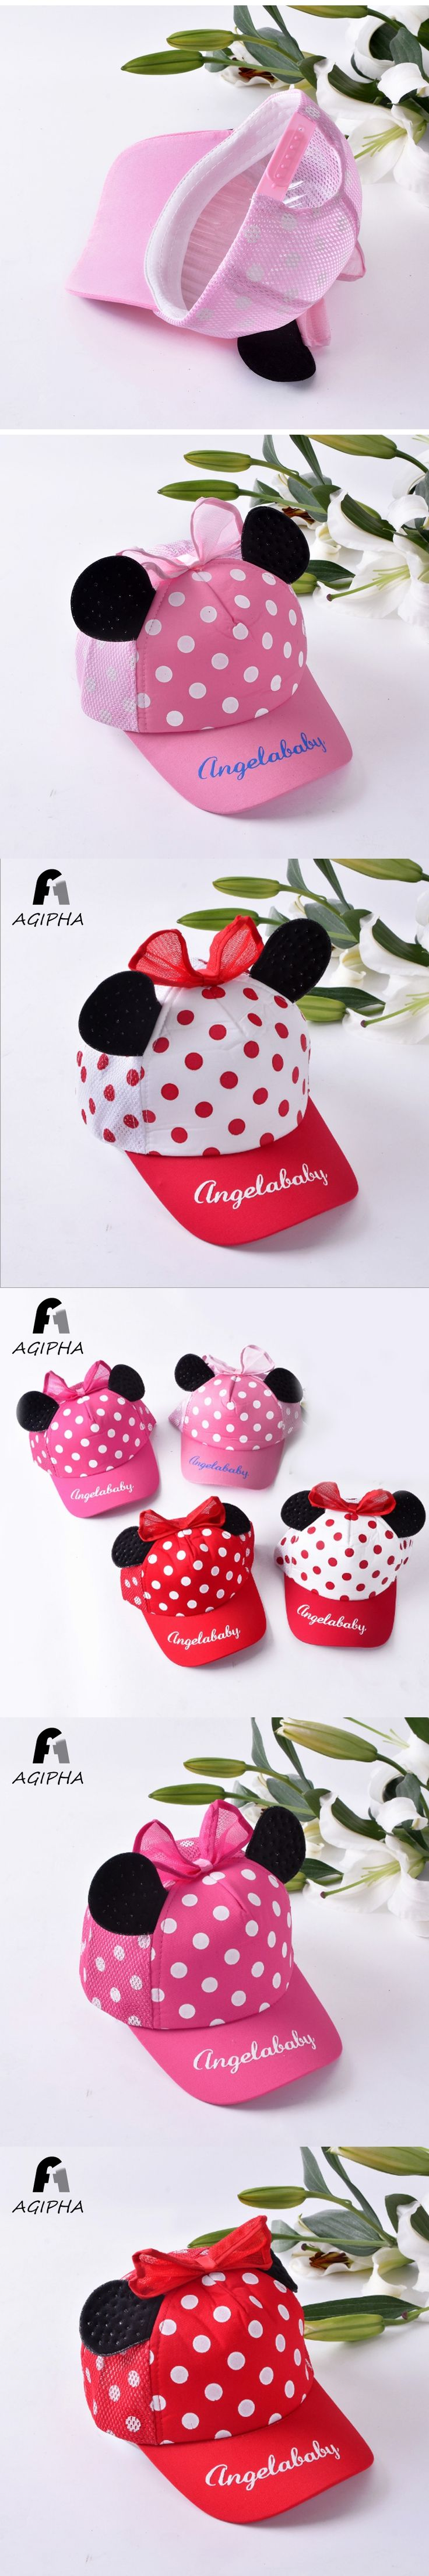 Cotton Lovely Cartoon Baseball Cap For Girls Boys Letter Pattern Bowknot Cute Ears Style Kids Sun Hat Breathable Baby Cap Summer